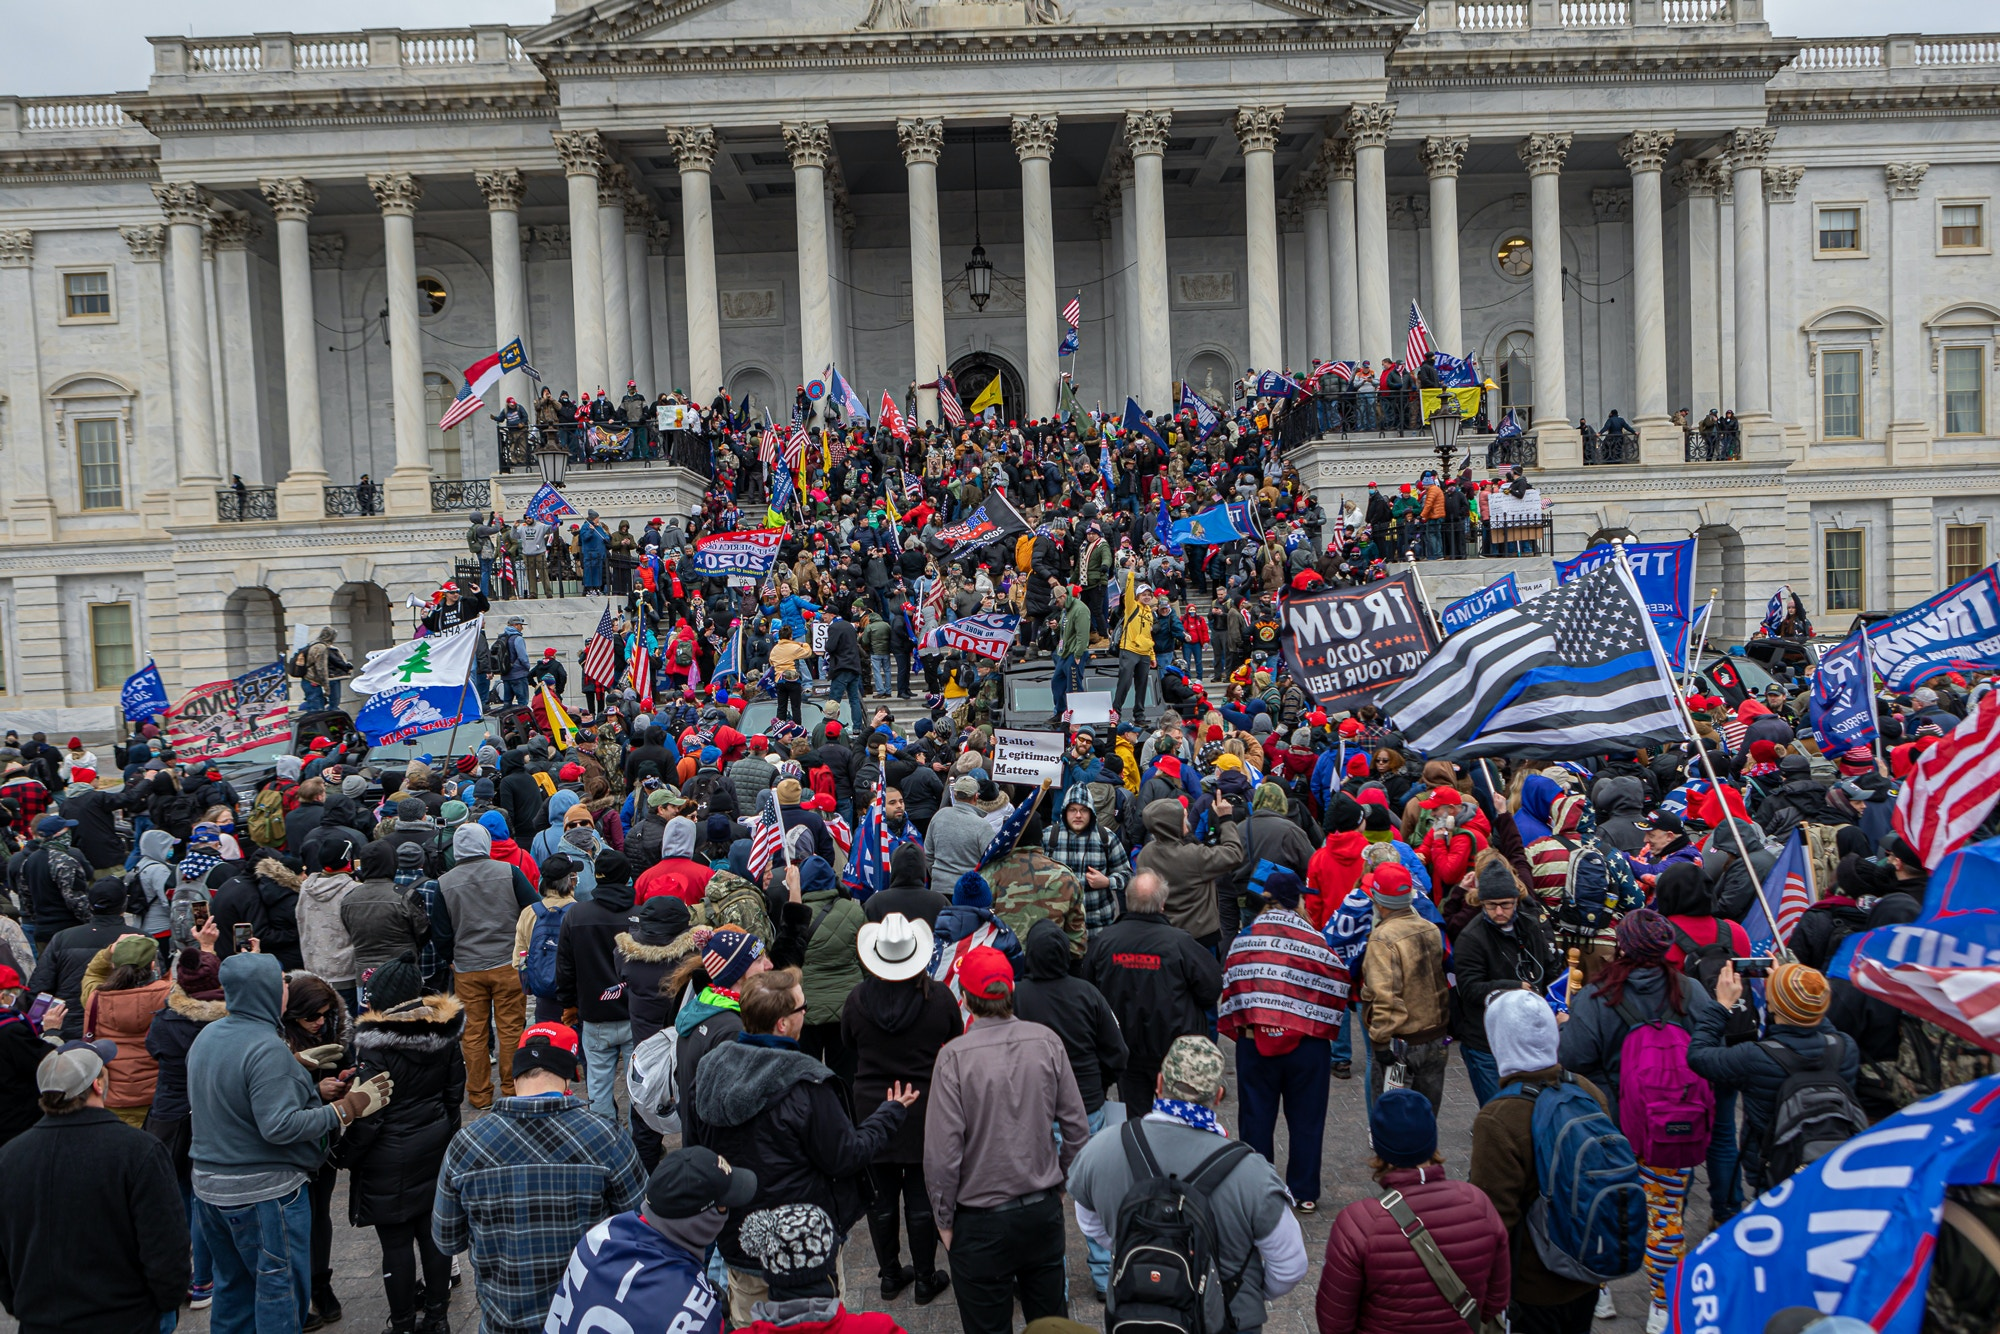 Pro-Trump supporters and far-right forces flooded Washington DC to protest Trump's election loss in Washington DC, on Jan. 6, 2021.